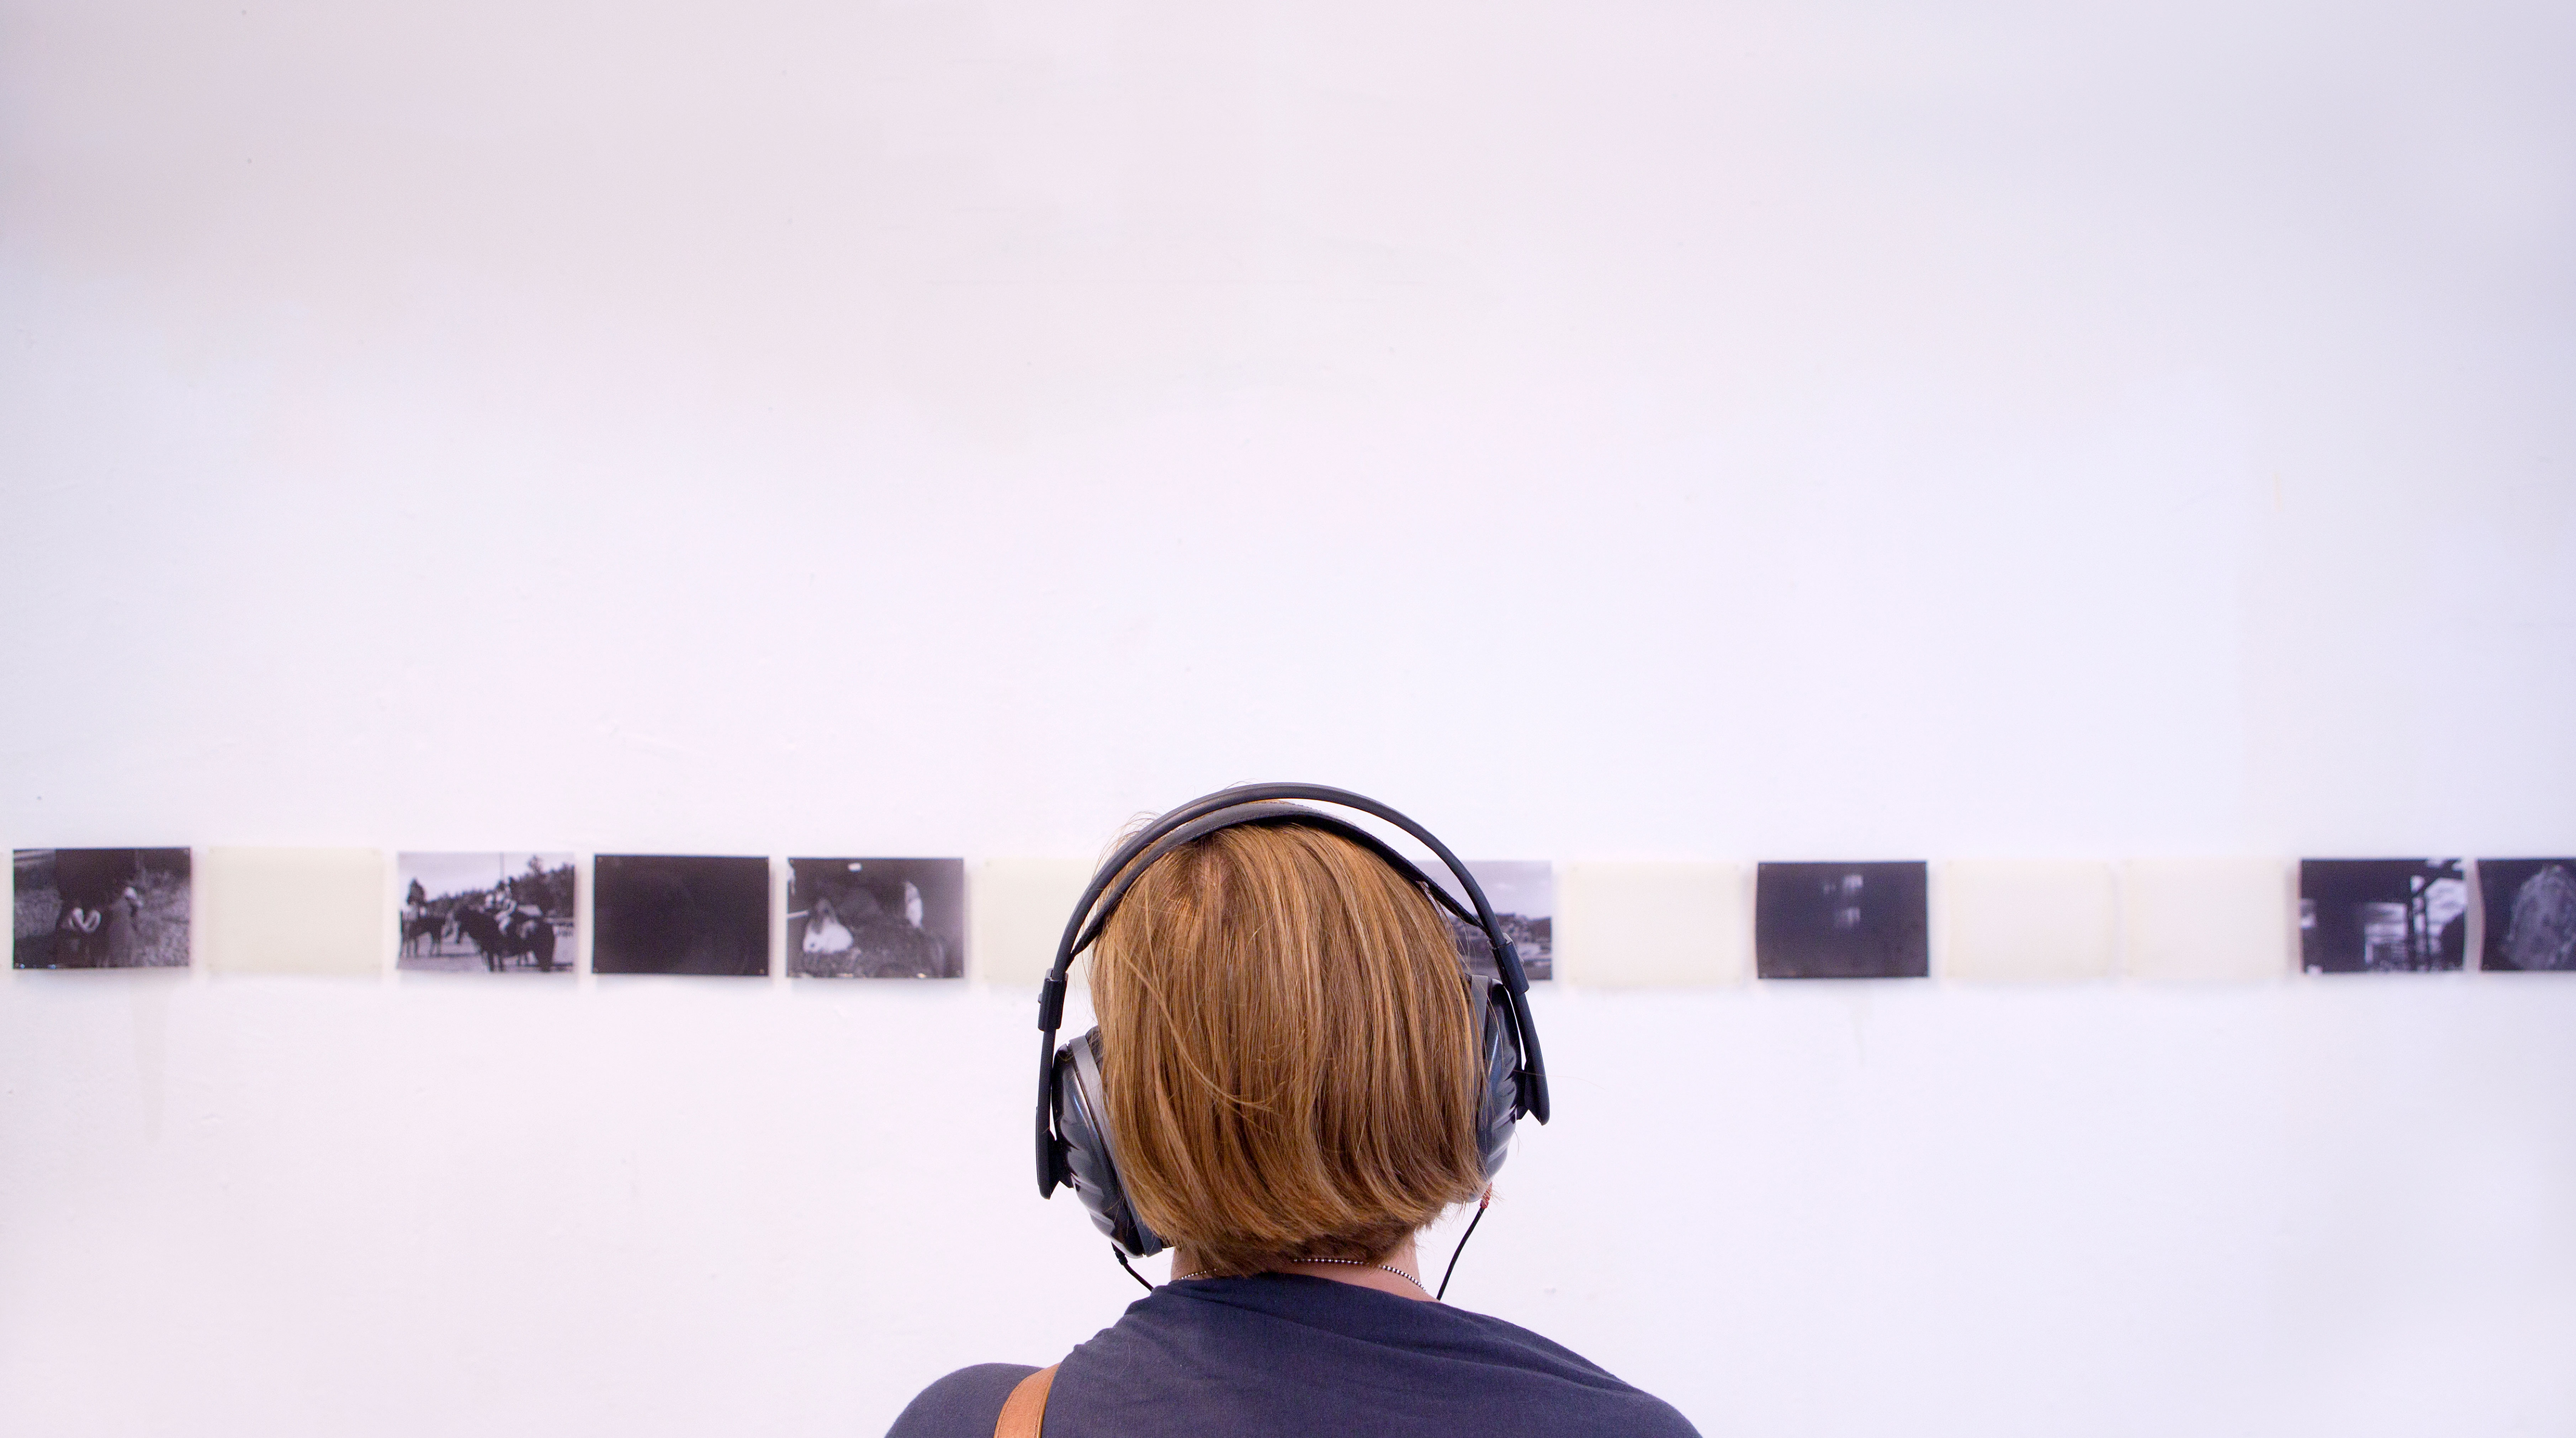 Person wearing headphones looking at photography exhibition.